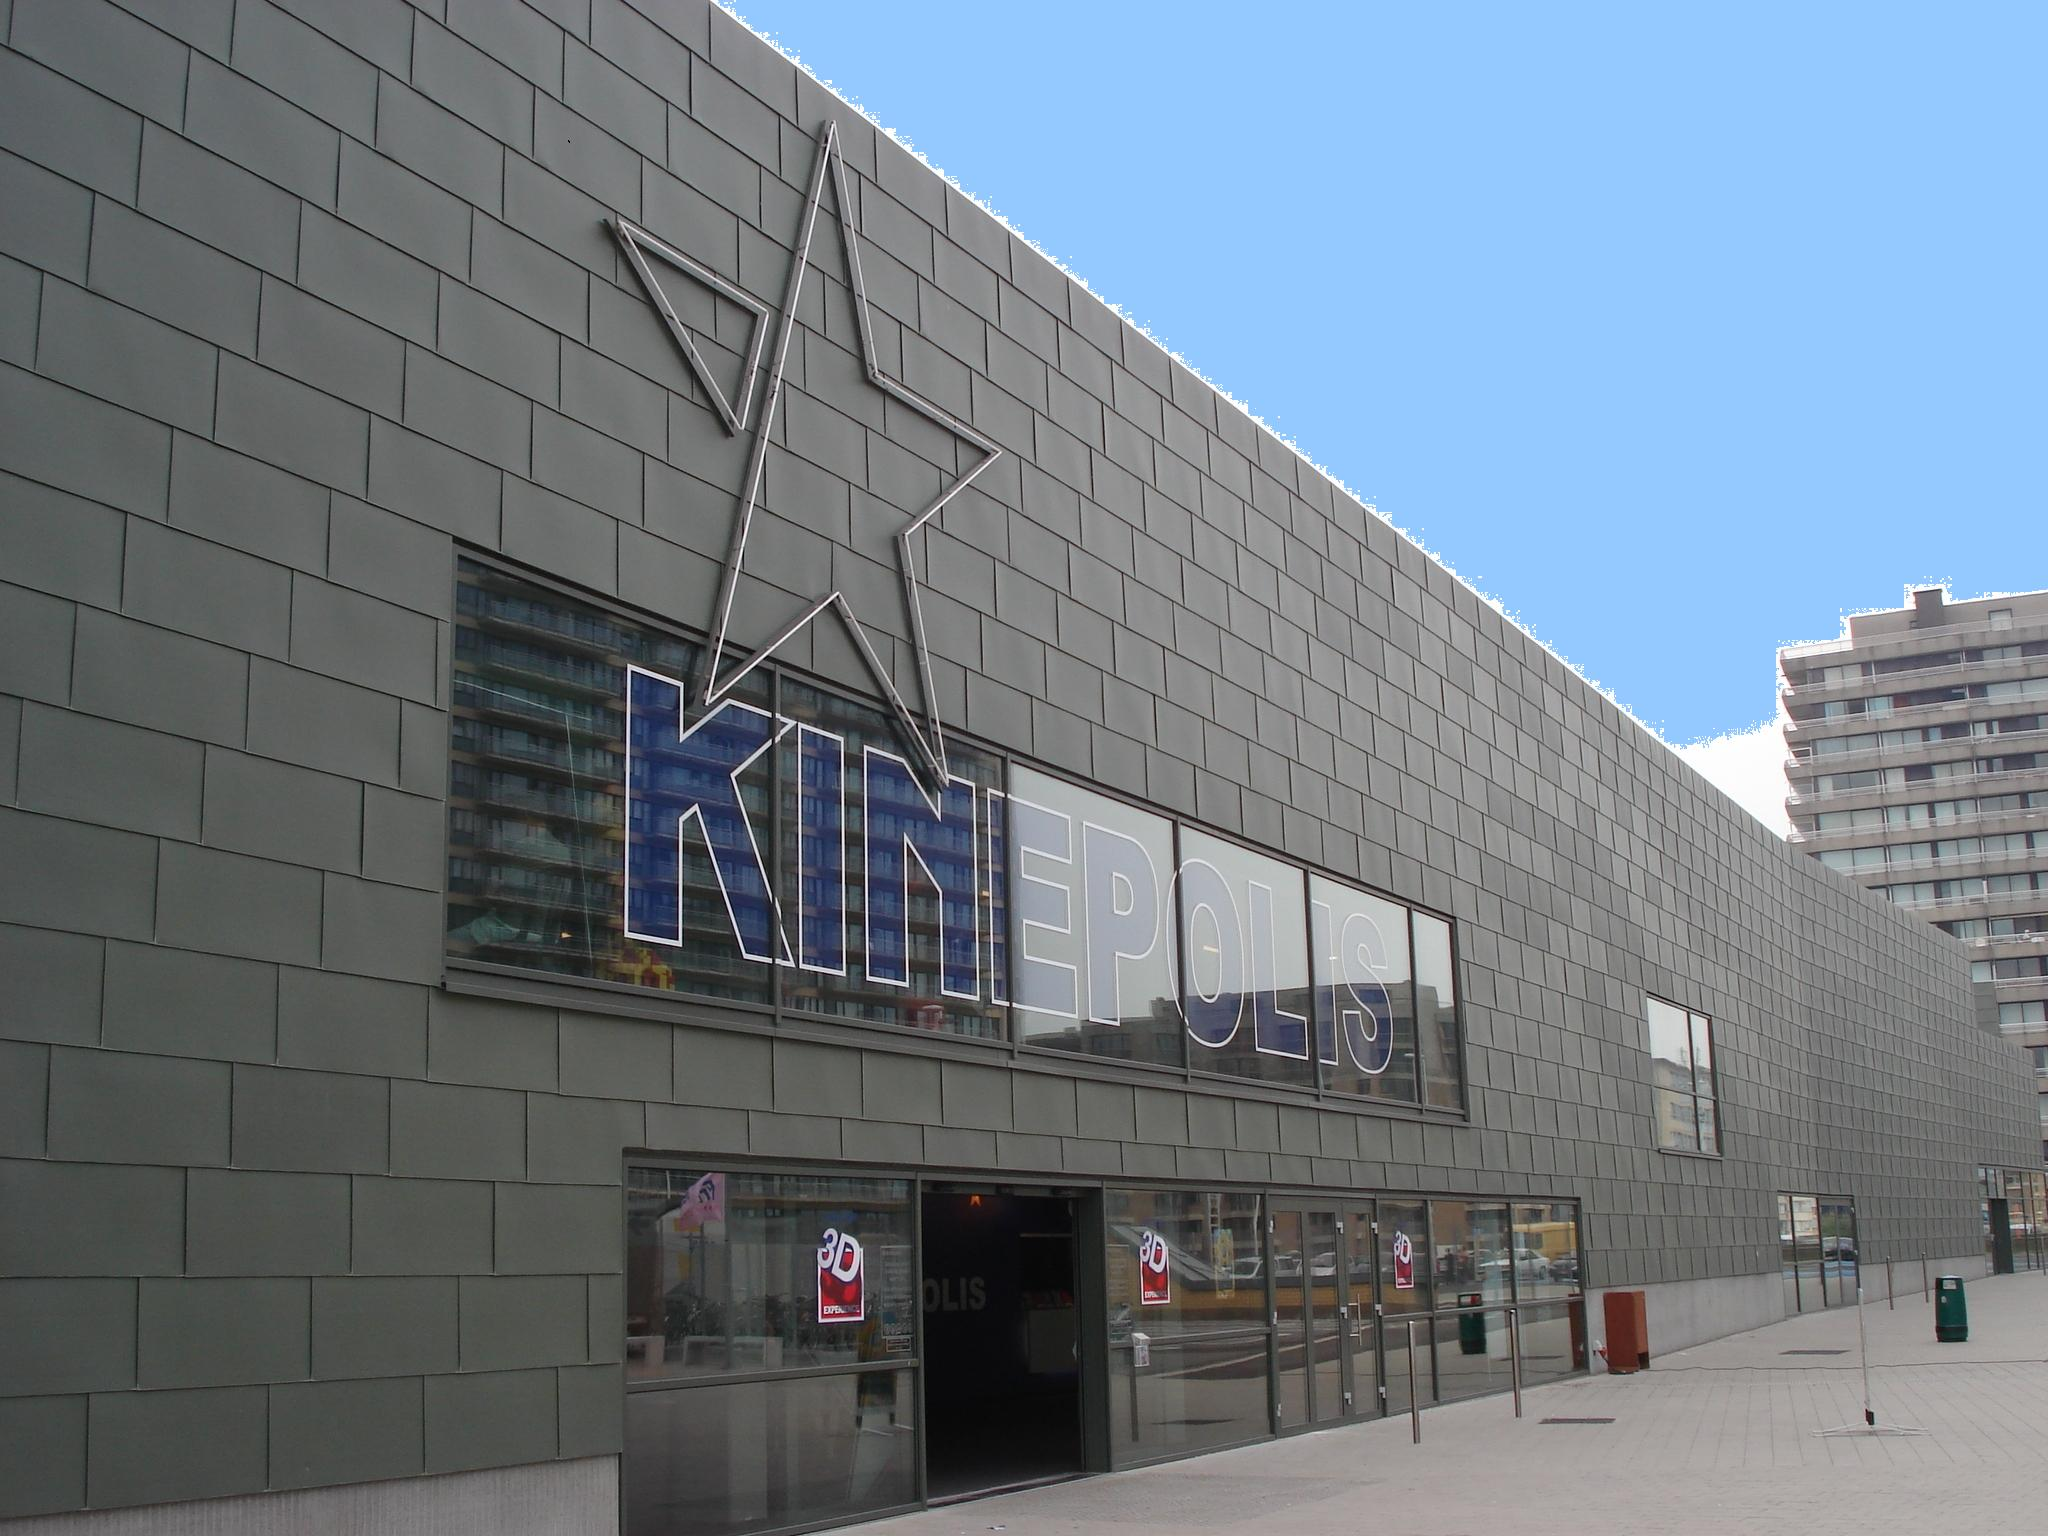 1445 Kinepolis Oostend outside